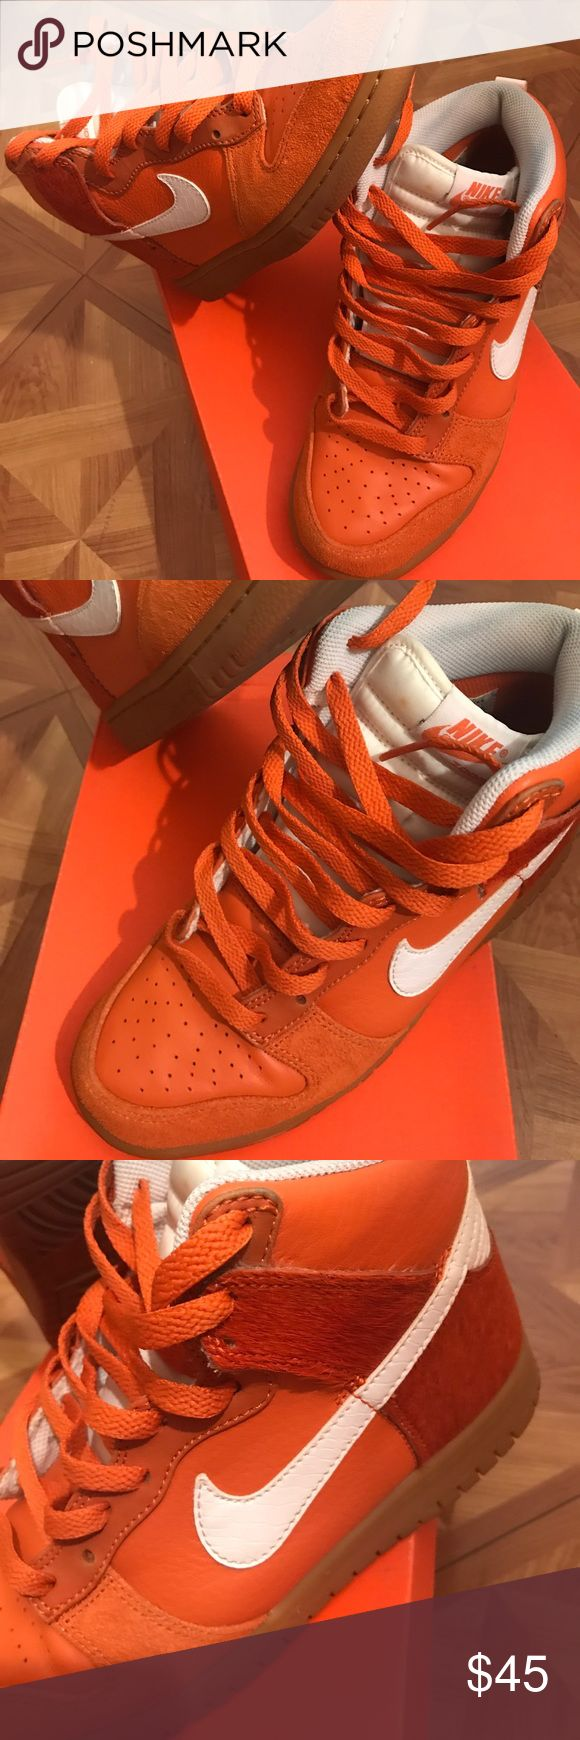 Nike Dunk Highs Orange Nike Dunk Highs Orange & White. Used but in good condition. No Trades 🛑I ship only the Sneakers. I do not ship the box🛑 Size 5.5 in boys. Nike Shoes Sneakers